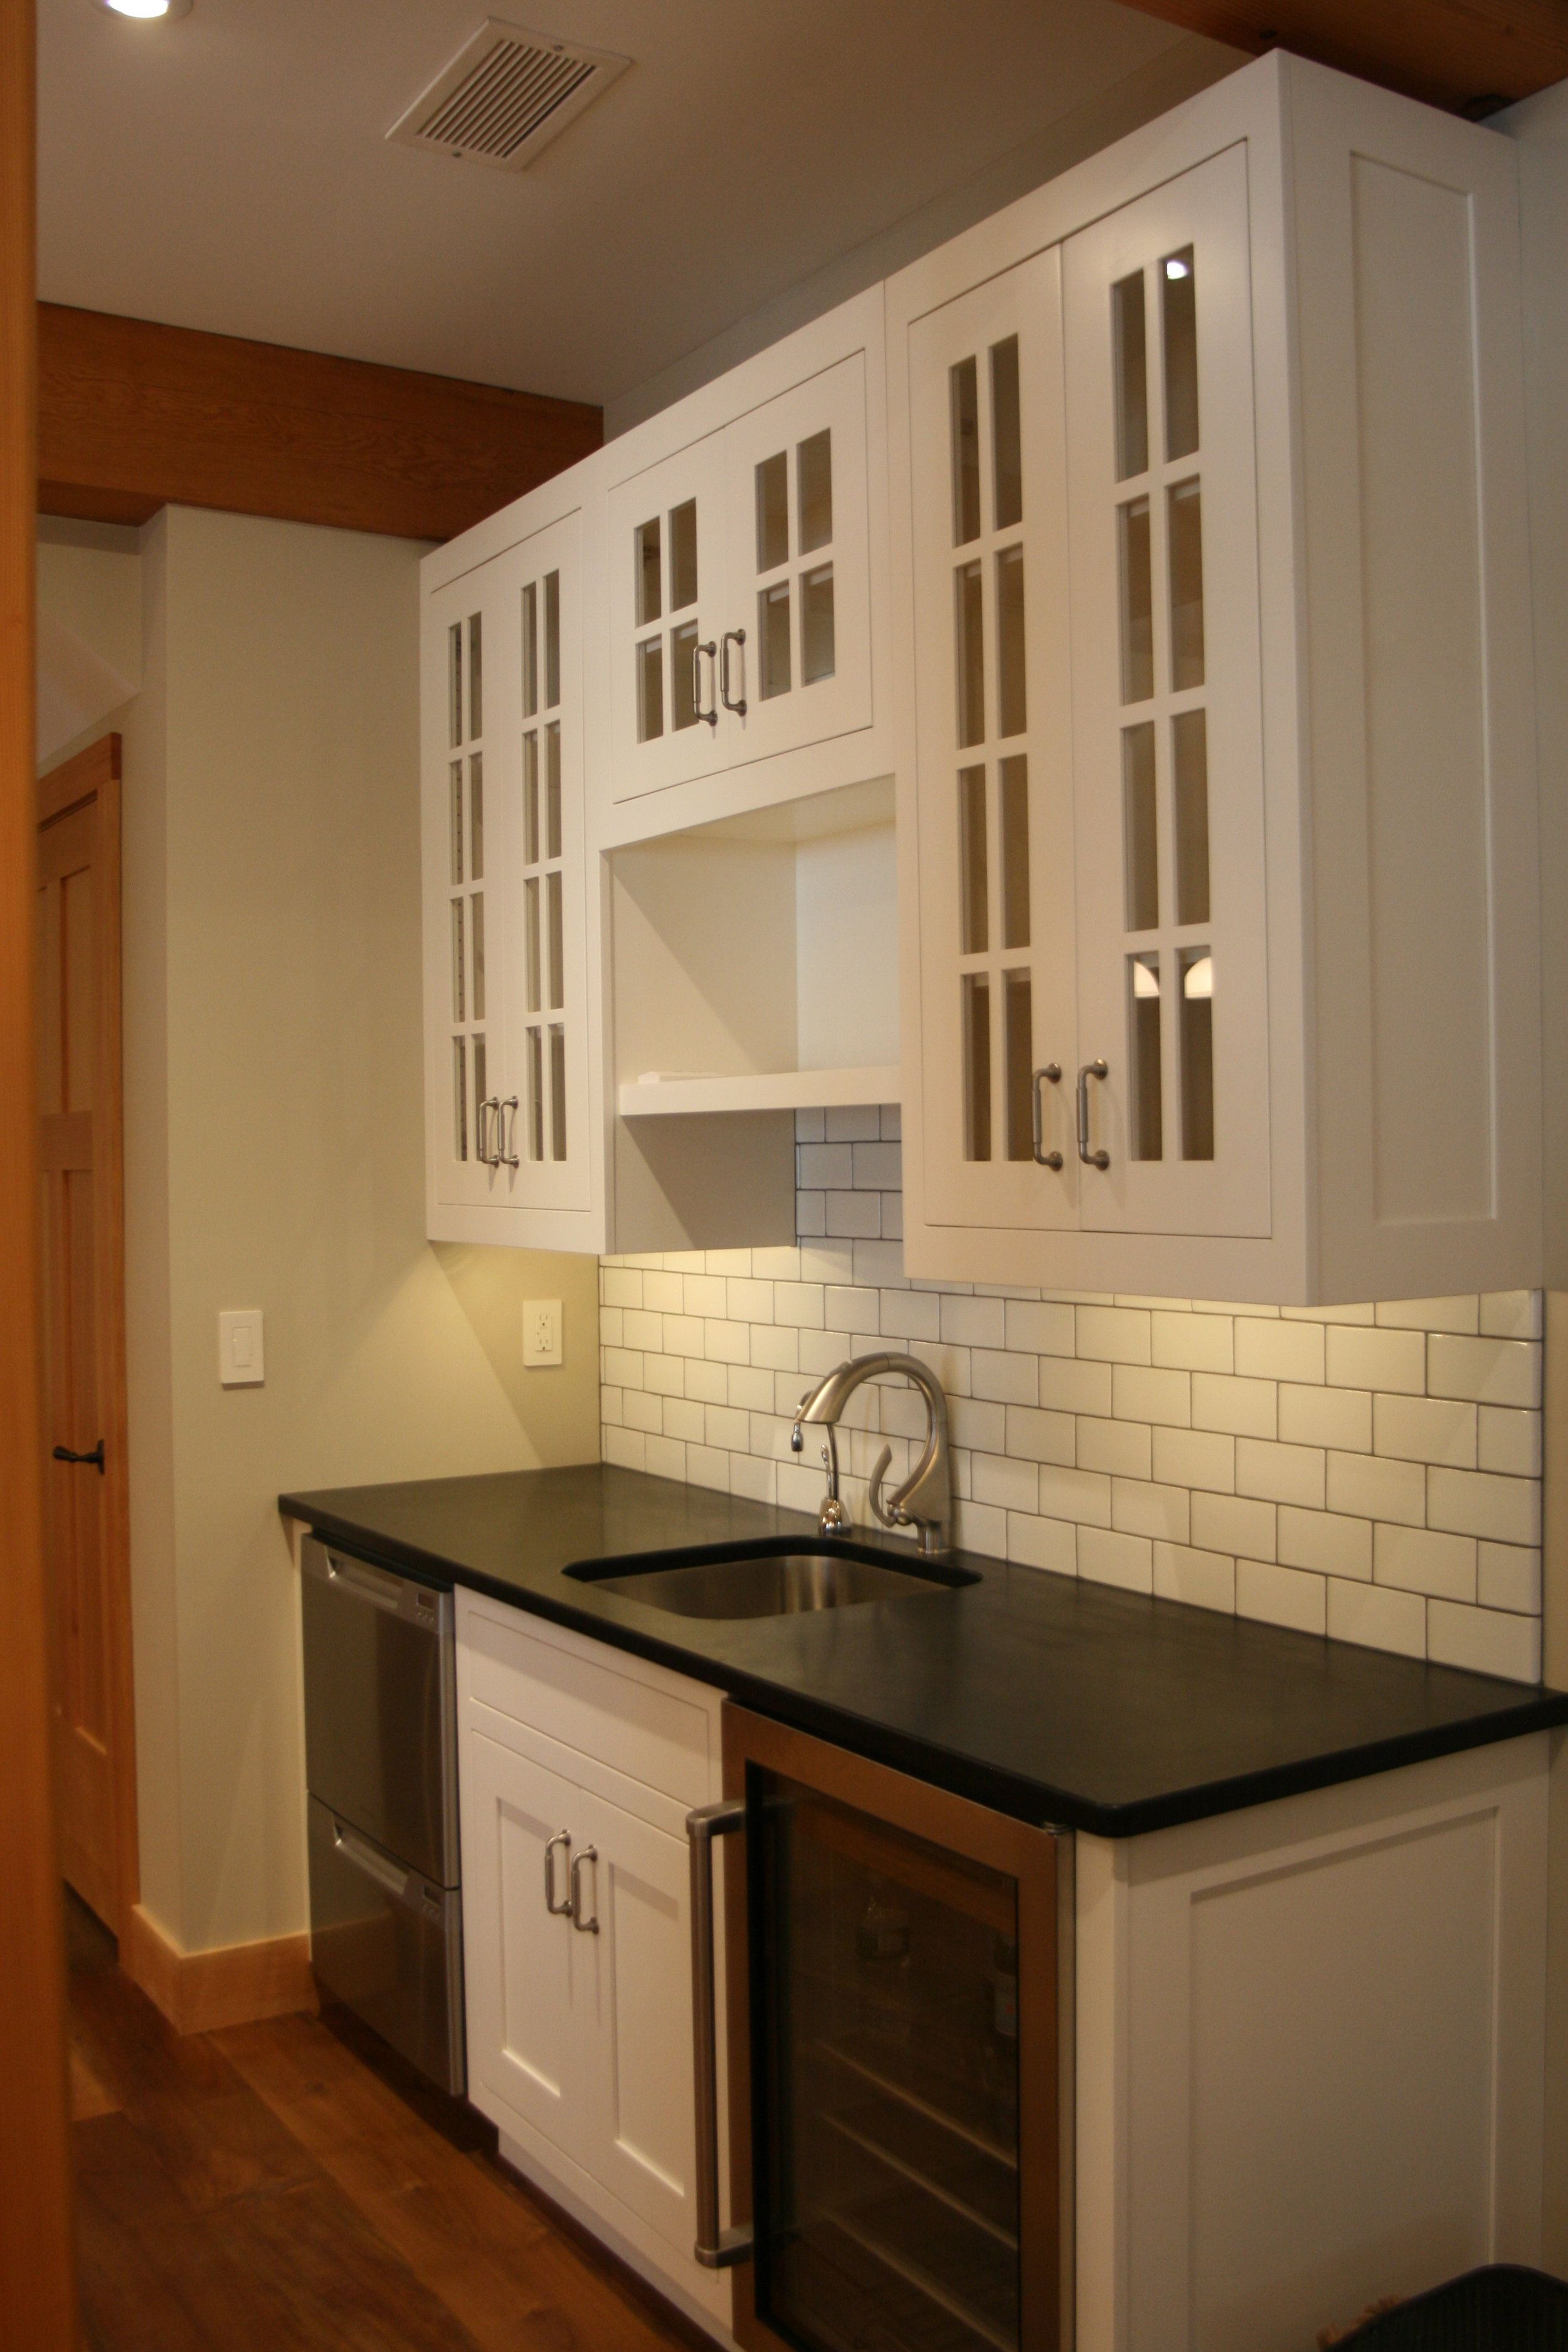 Custom finish Maple kitchenette with soapstone counter top